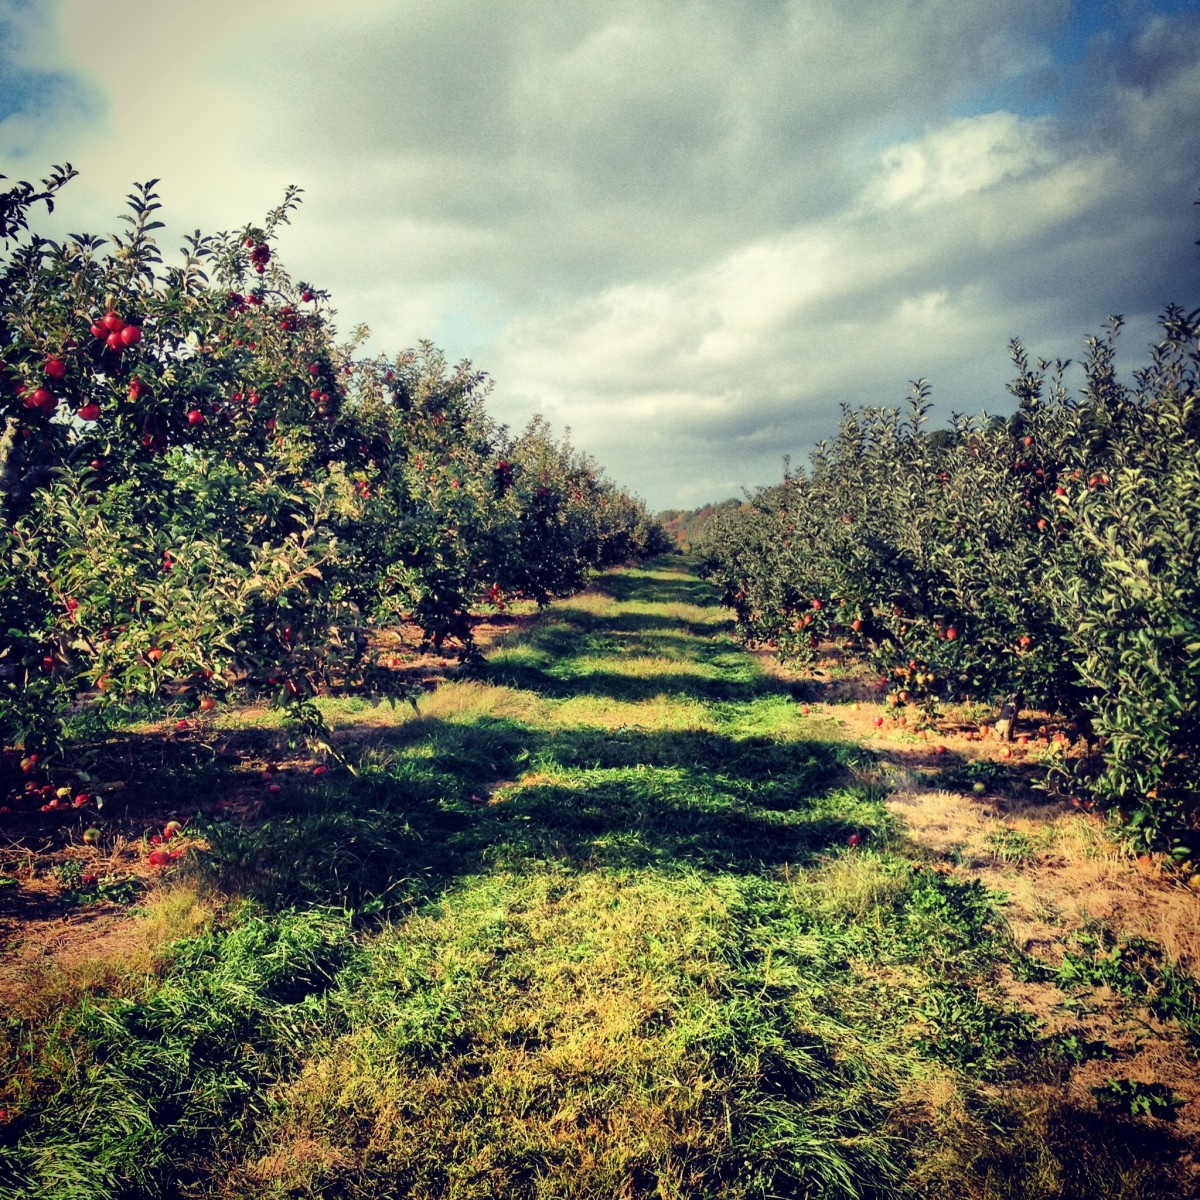 Bishop's Orchard October 2013